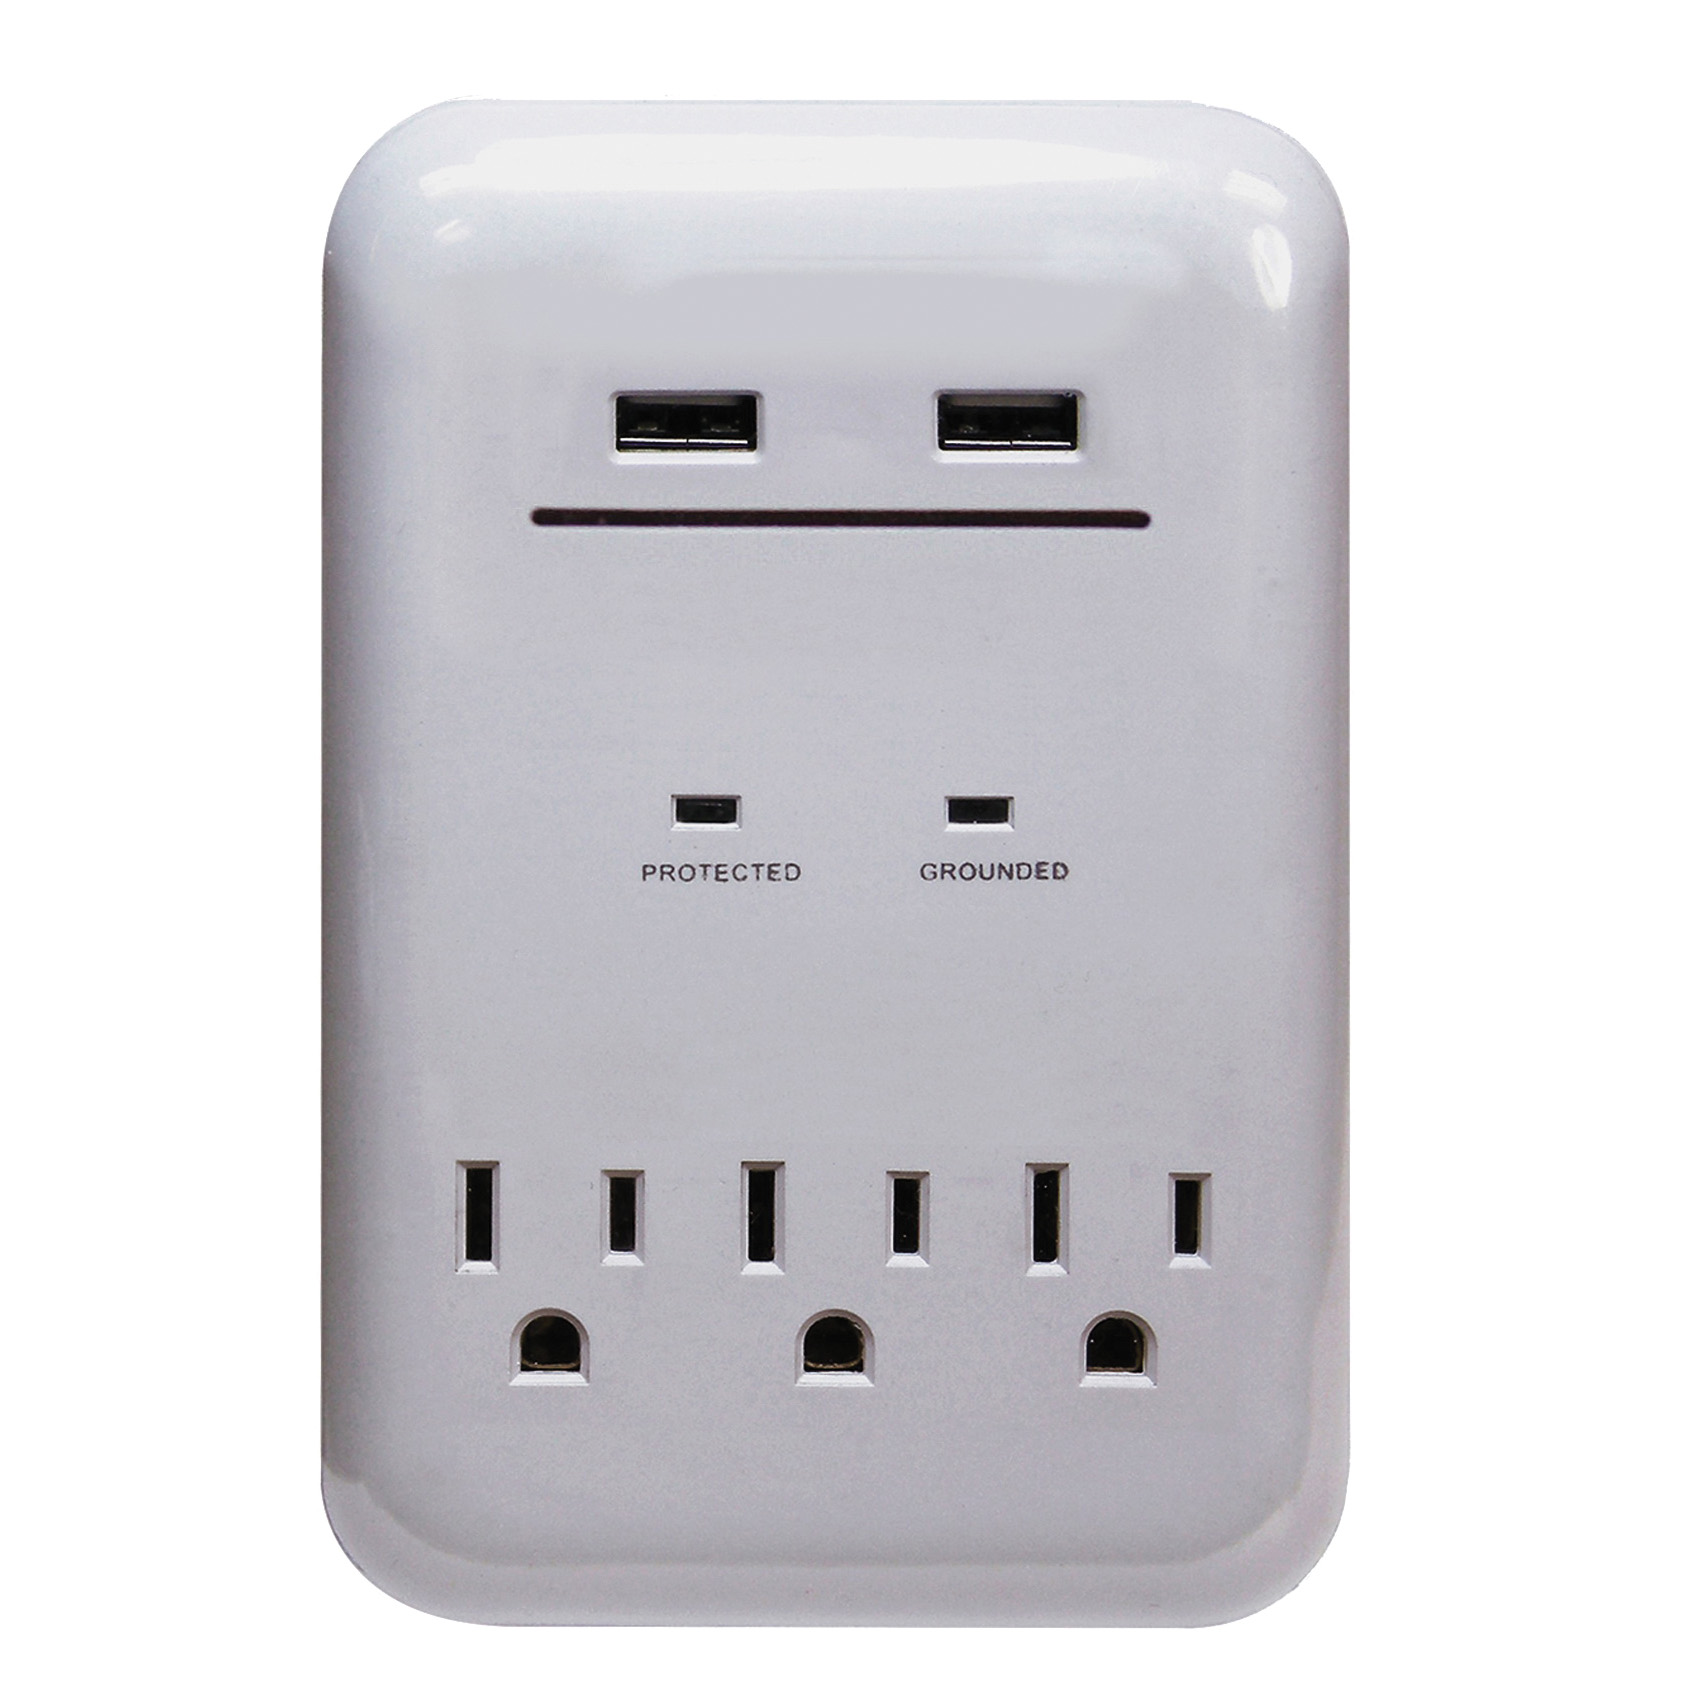 Picture of PowerZone ORUSB343S USB Charger, 3.4 A, 3-Outlet, 950 J Energy